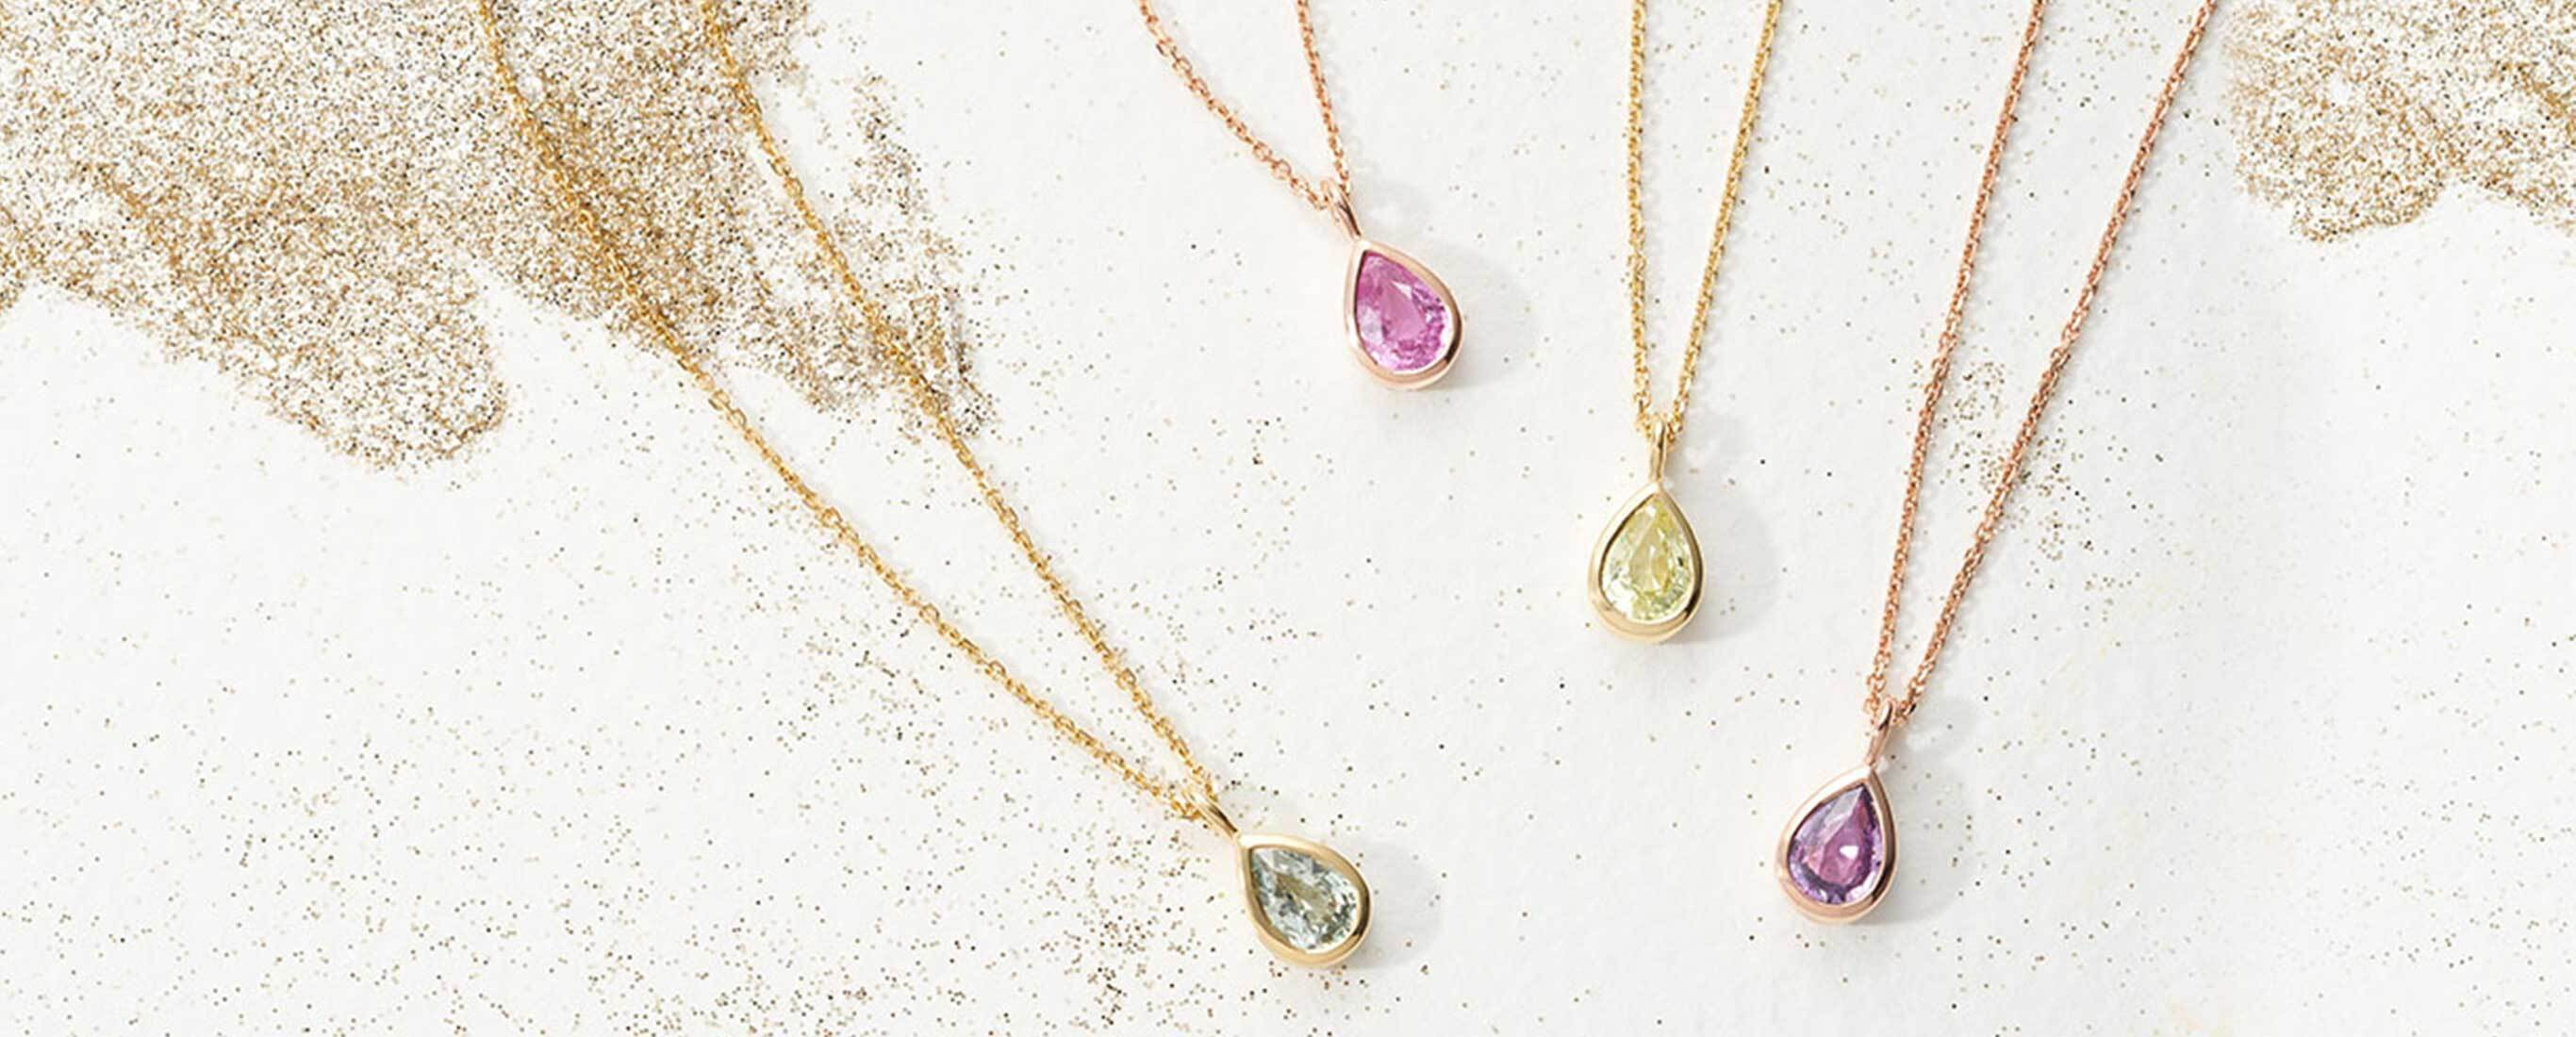 Four Ecksand Showcase Pear Cut Sapphire Gemstone Necklaces in Yellow Gold featuring Blue Sapphire, Pink Sapphire, Green Sapphire, and Purple Sapphire